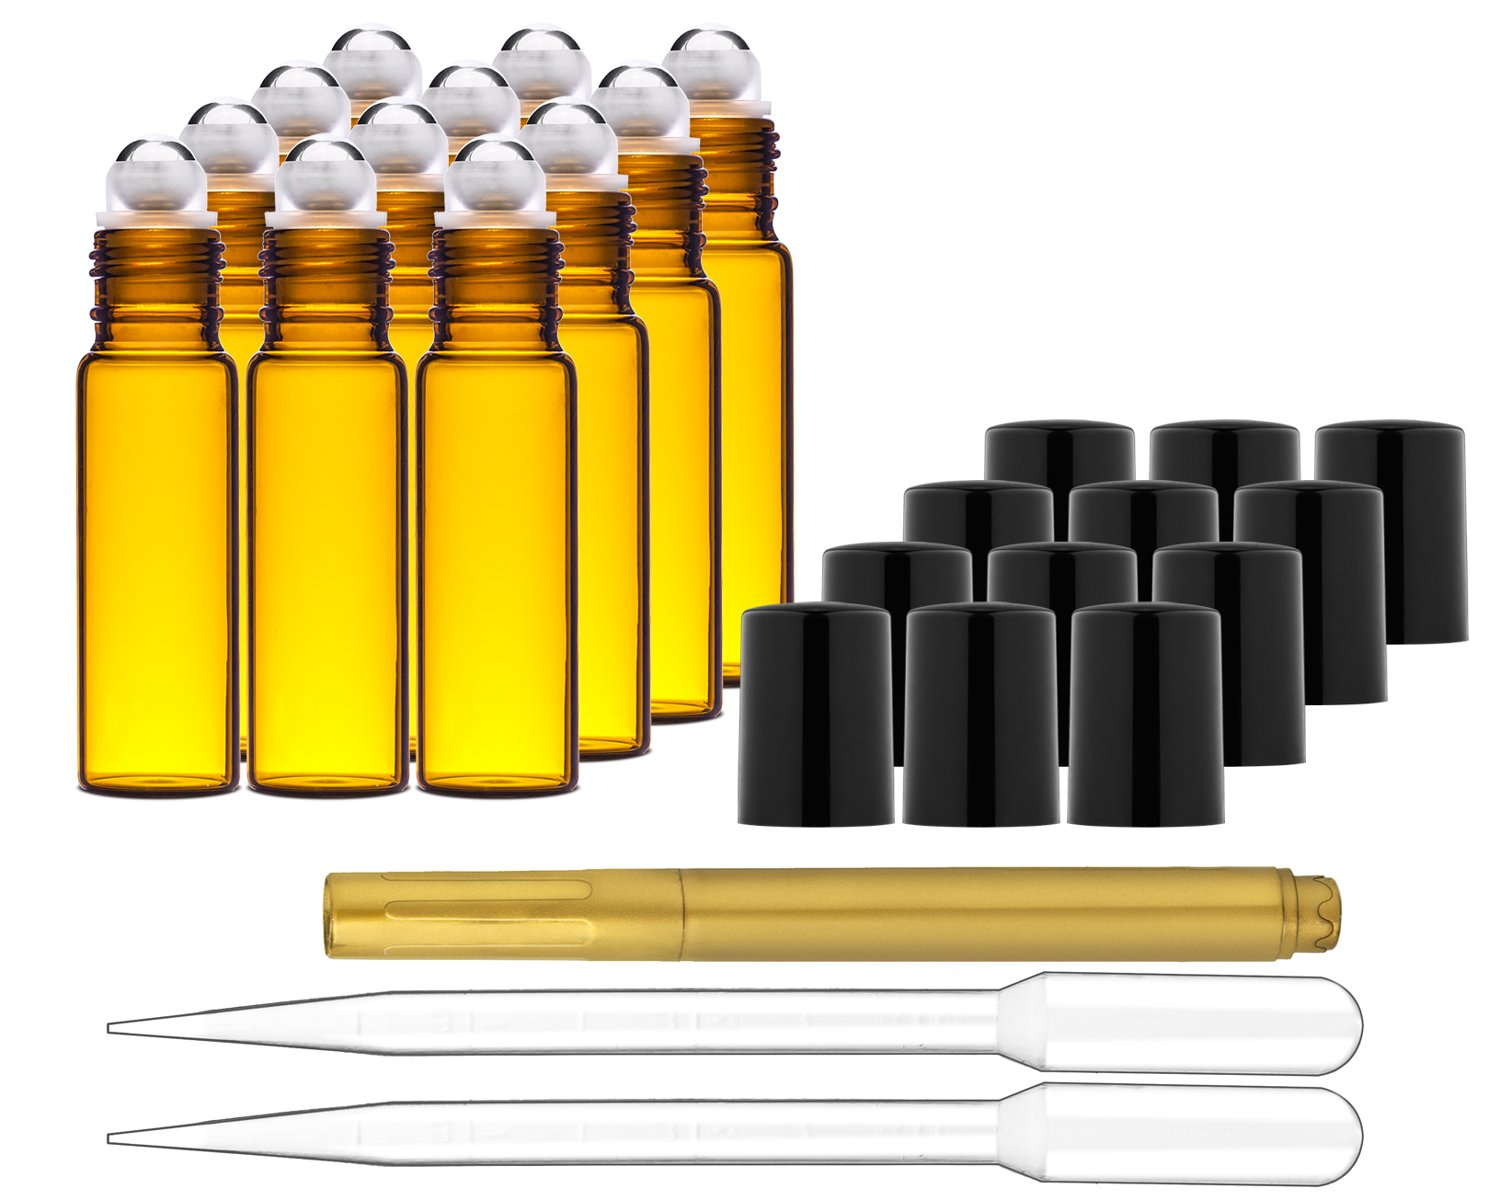 Culinaire 12 Pack Of 10 ml Amber Glass Bottles with Stainless Steel Roller Balls Caps 2x 3 ml Droppers with Gold Glass Pen included